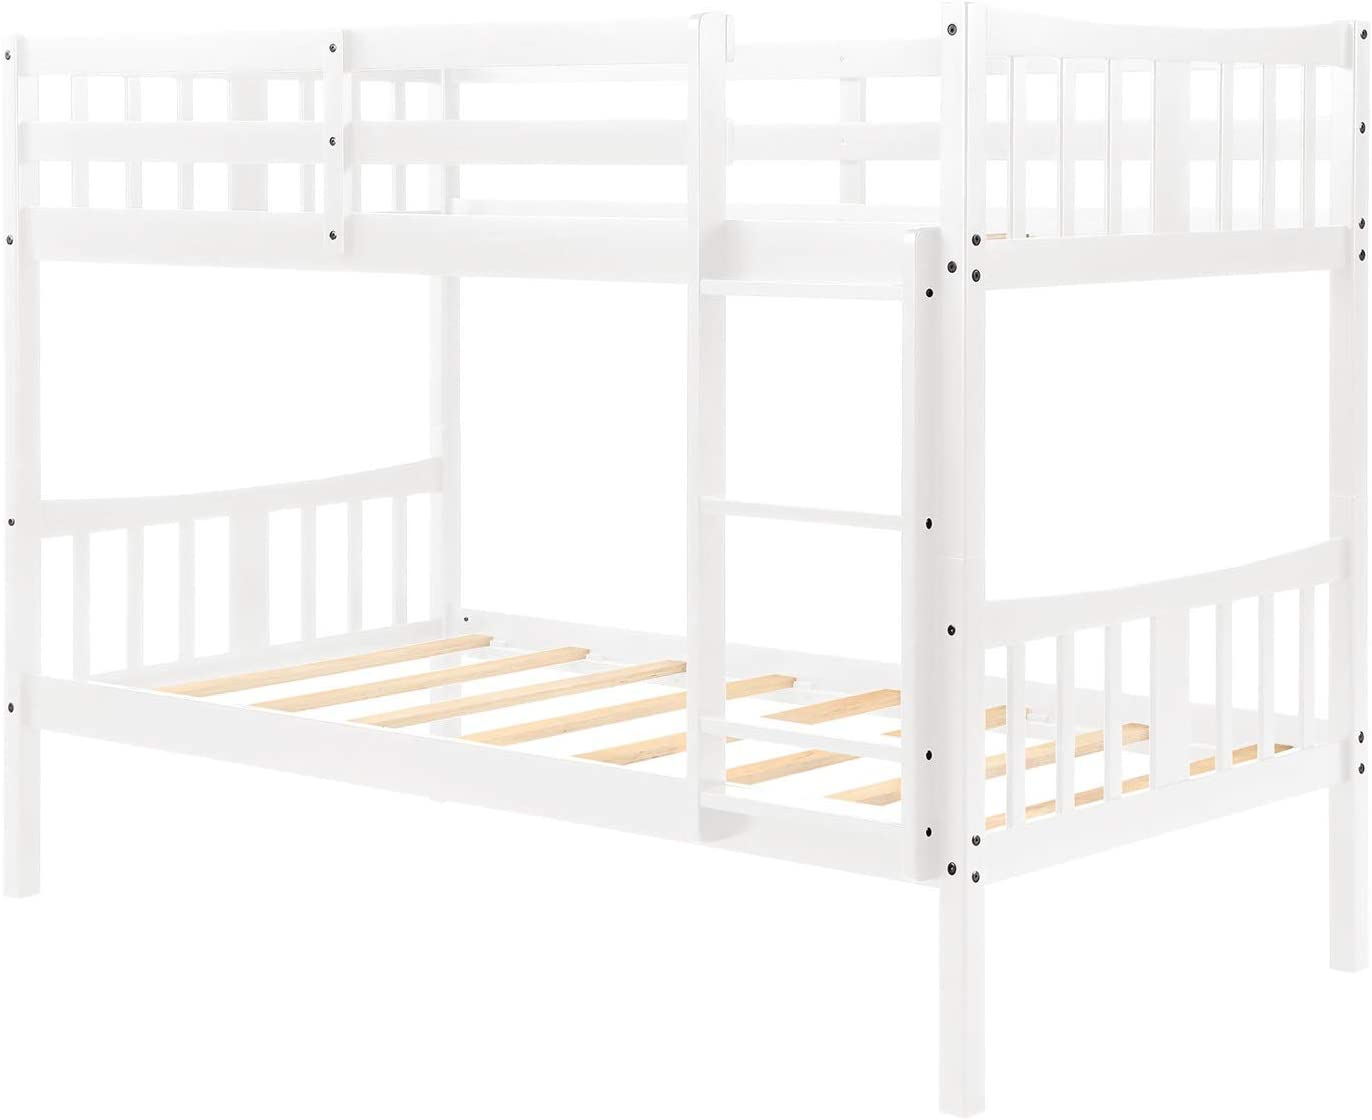 Beck OrlaIigt Bedroome for niños Twin sobre Twin Bunk Bed Cama Doble de Madera con Escalera: Amazon.es: Hogar